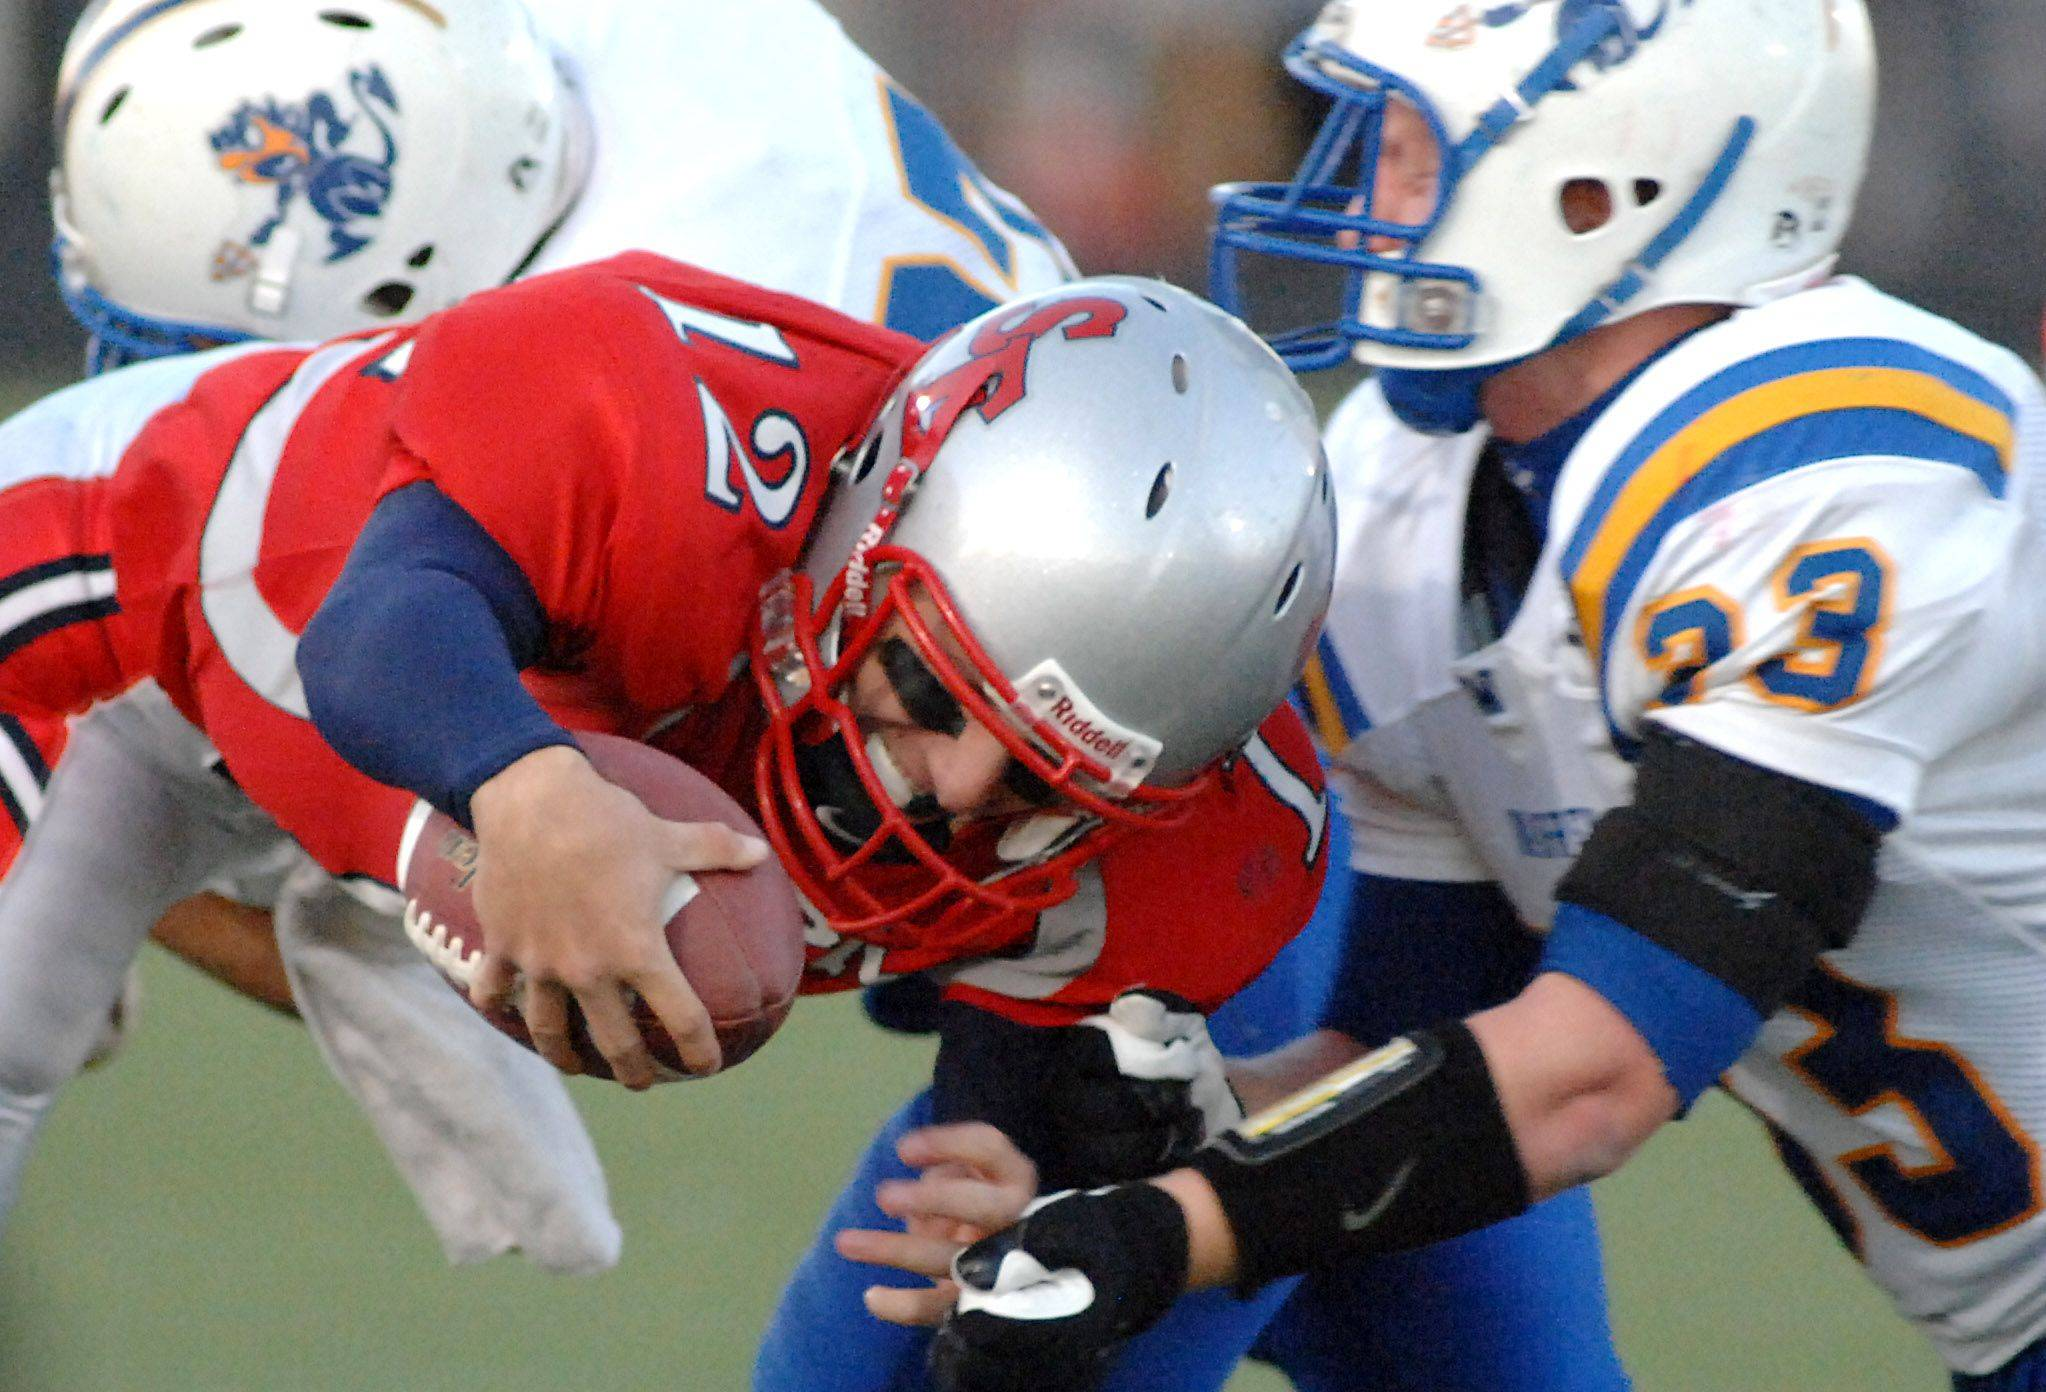 South Elgin's John Menken is sacked in the third quarter.